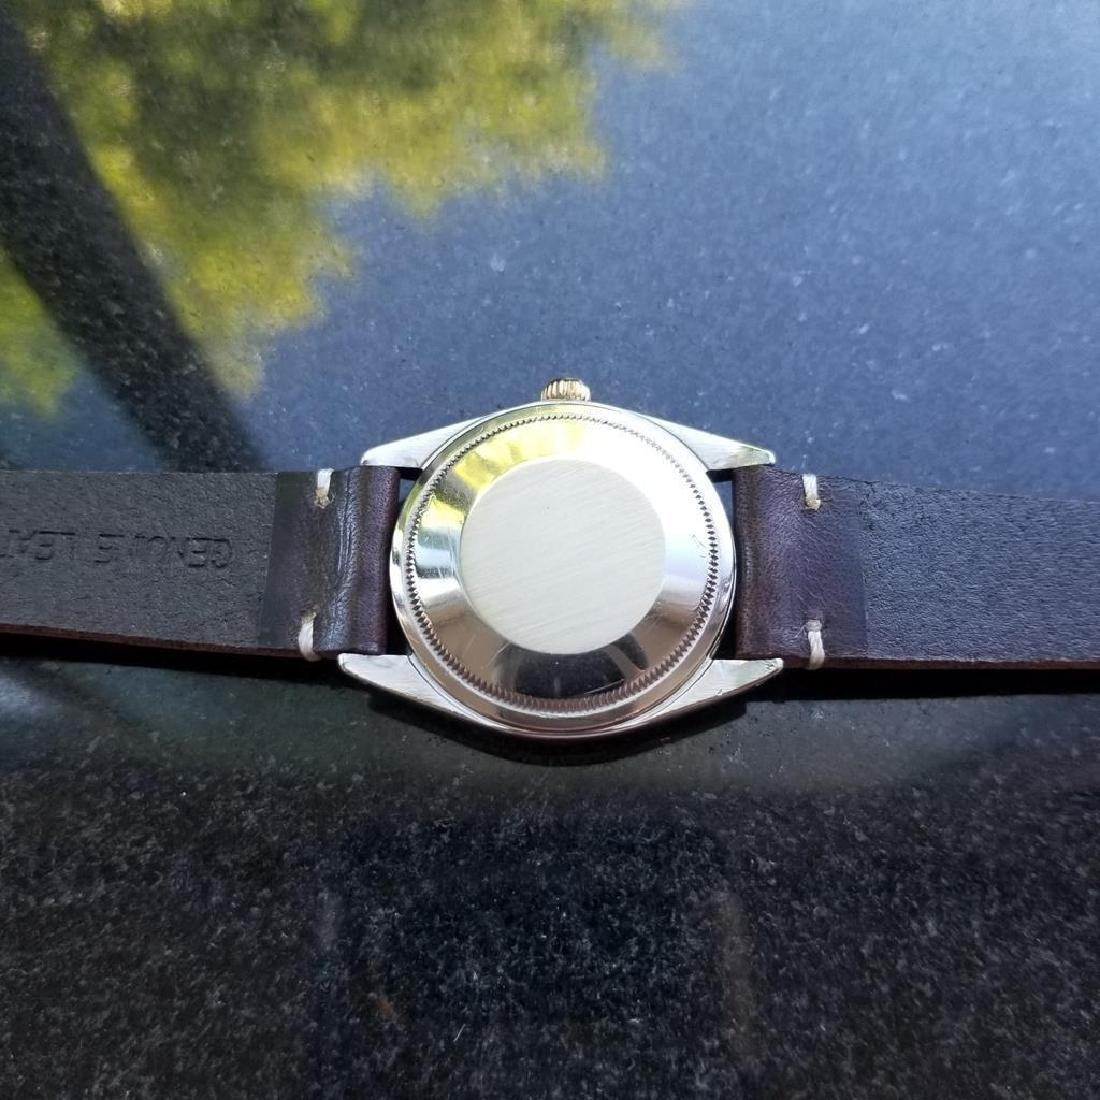 ROLEX Men's 18K and SS Oyster Perpetual 1008 Zephyr - 6